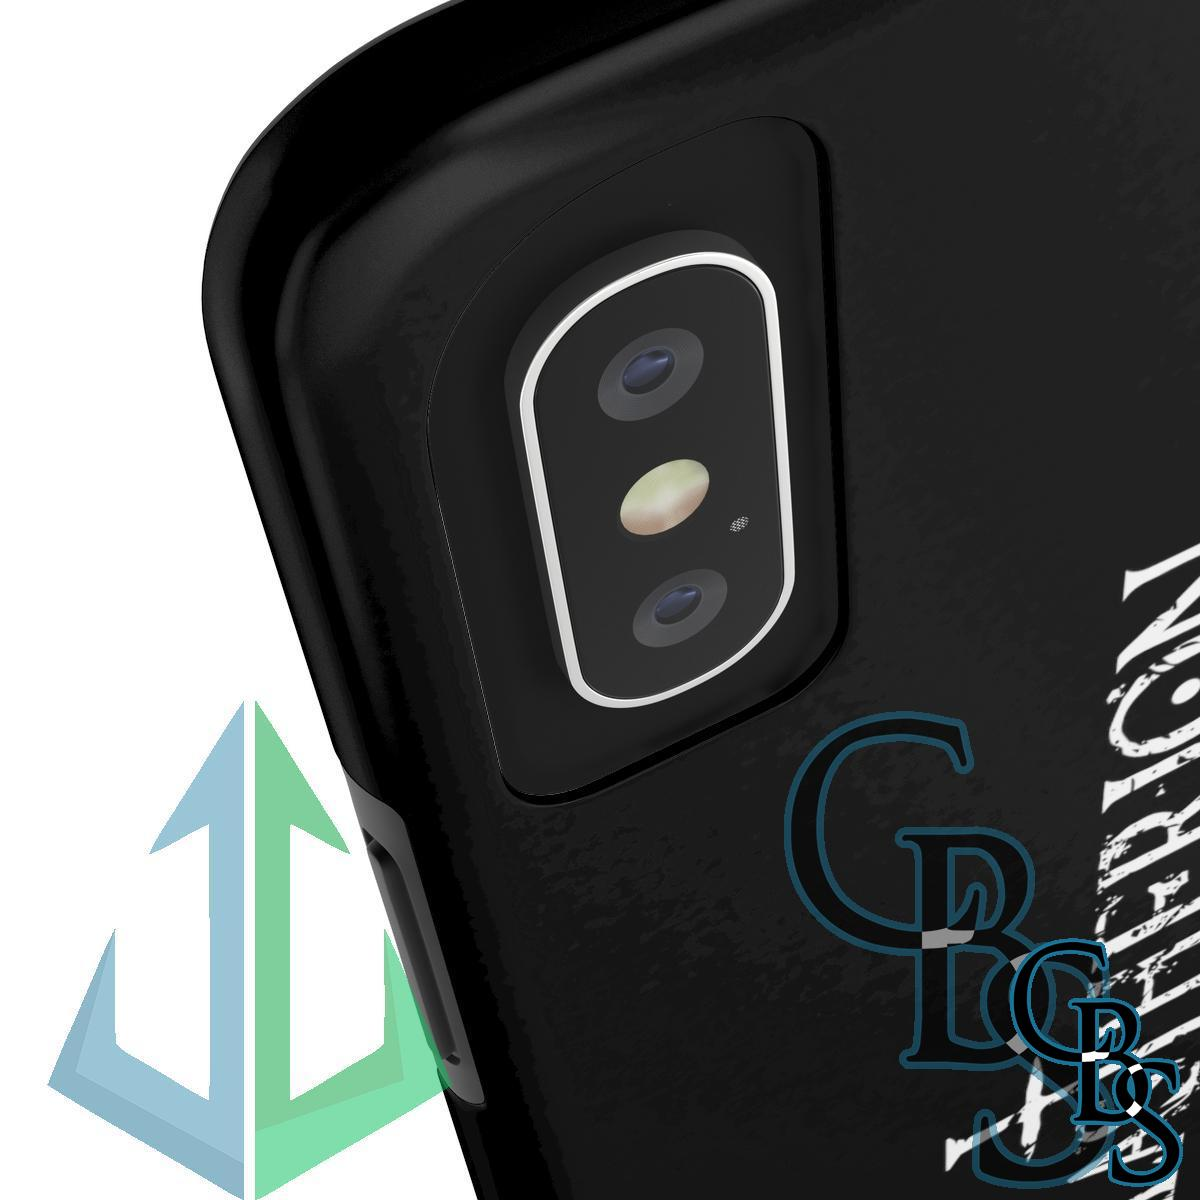 Hilastherion Logo Tough iPhone Cases (iPhone 7/7 Plus, iPhone 8/8 Plus, iPhone X, XS, XR, iPhone 11, 11 Pro, 11 Pro Max)